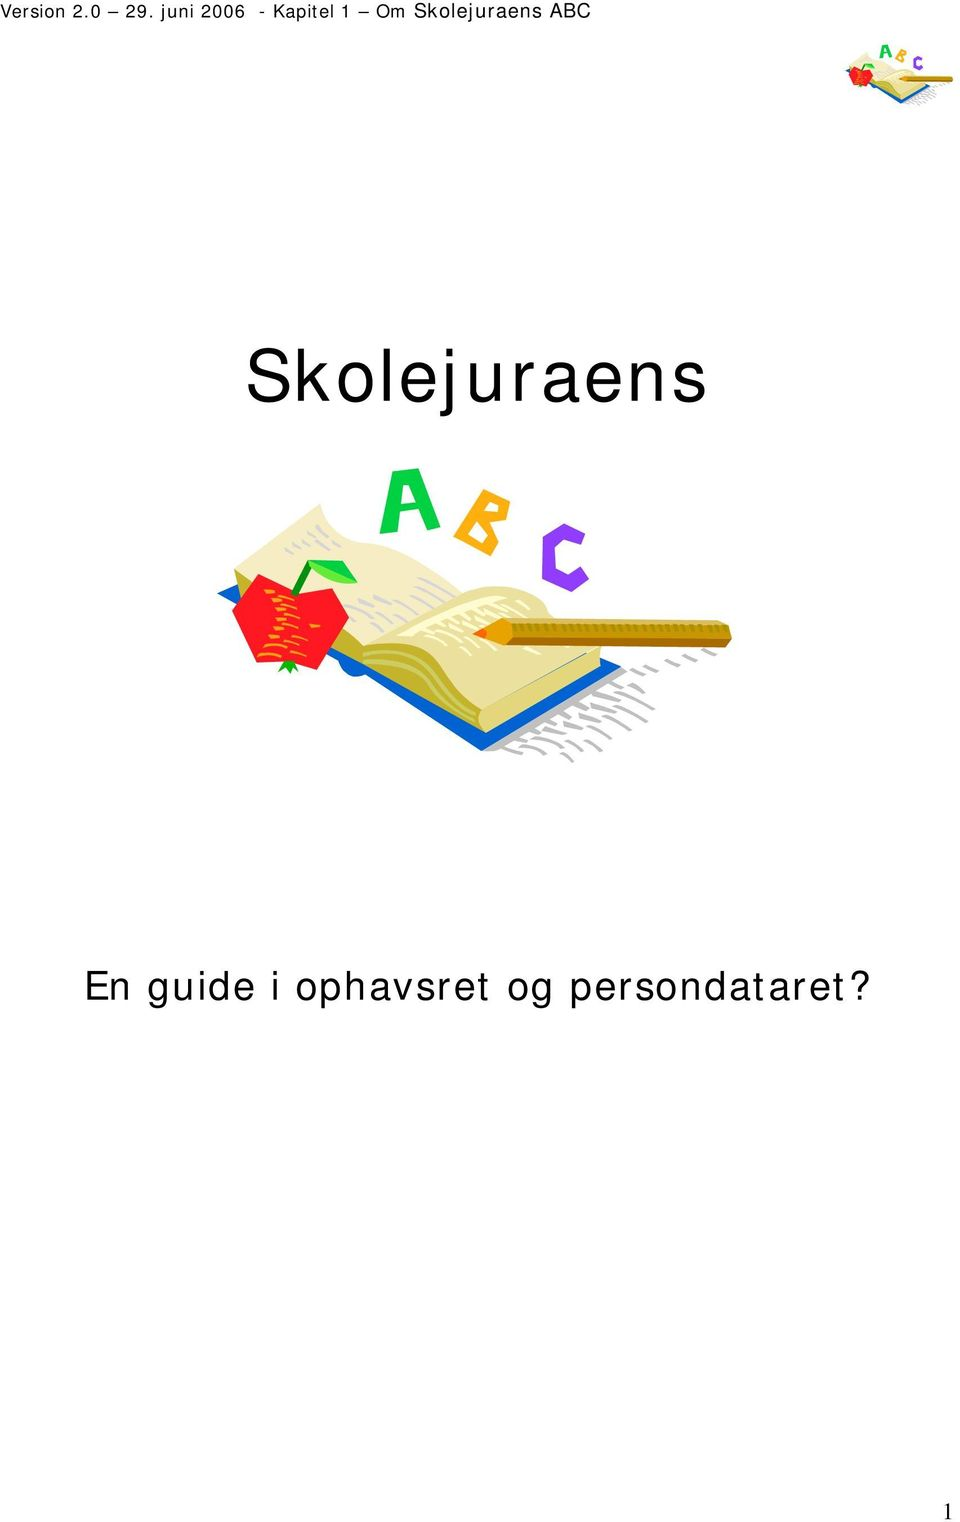 Skolejuraens ABC